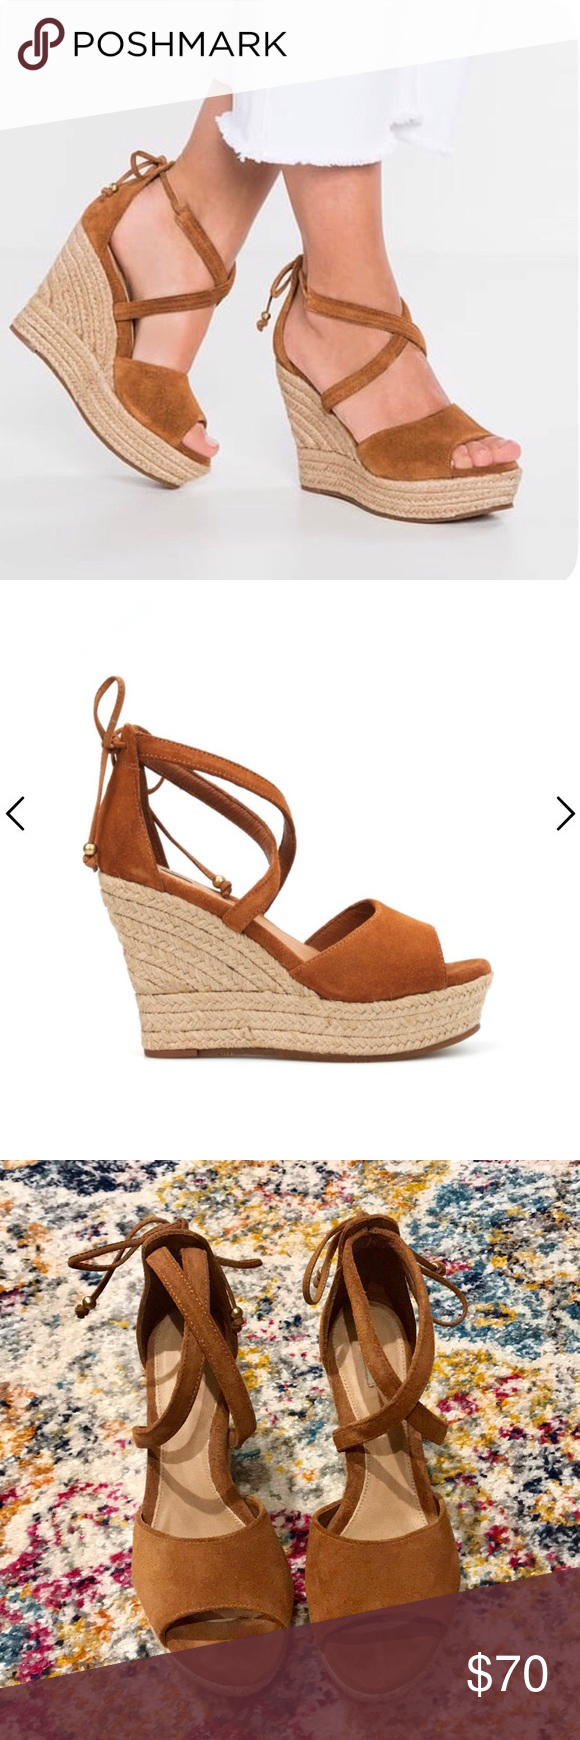 Ugg Reagan Chestnut Suede Wedges Womens Shoes Wedges